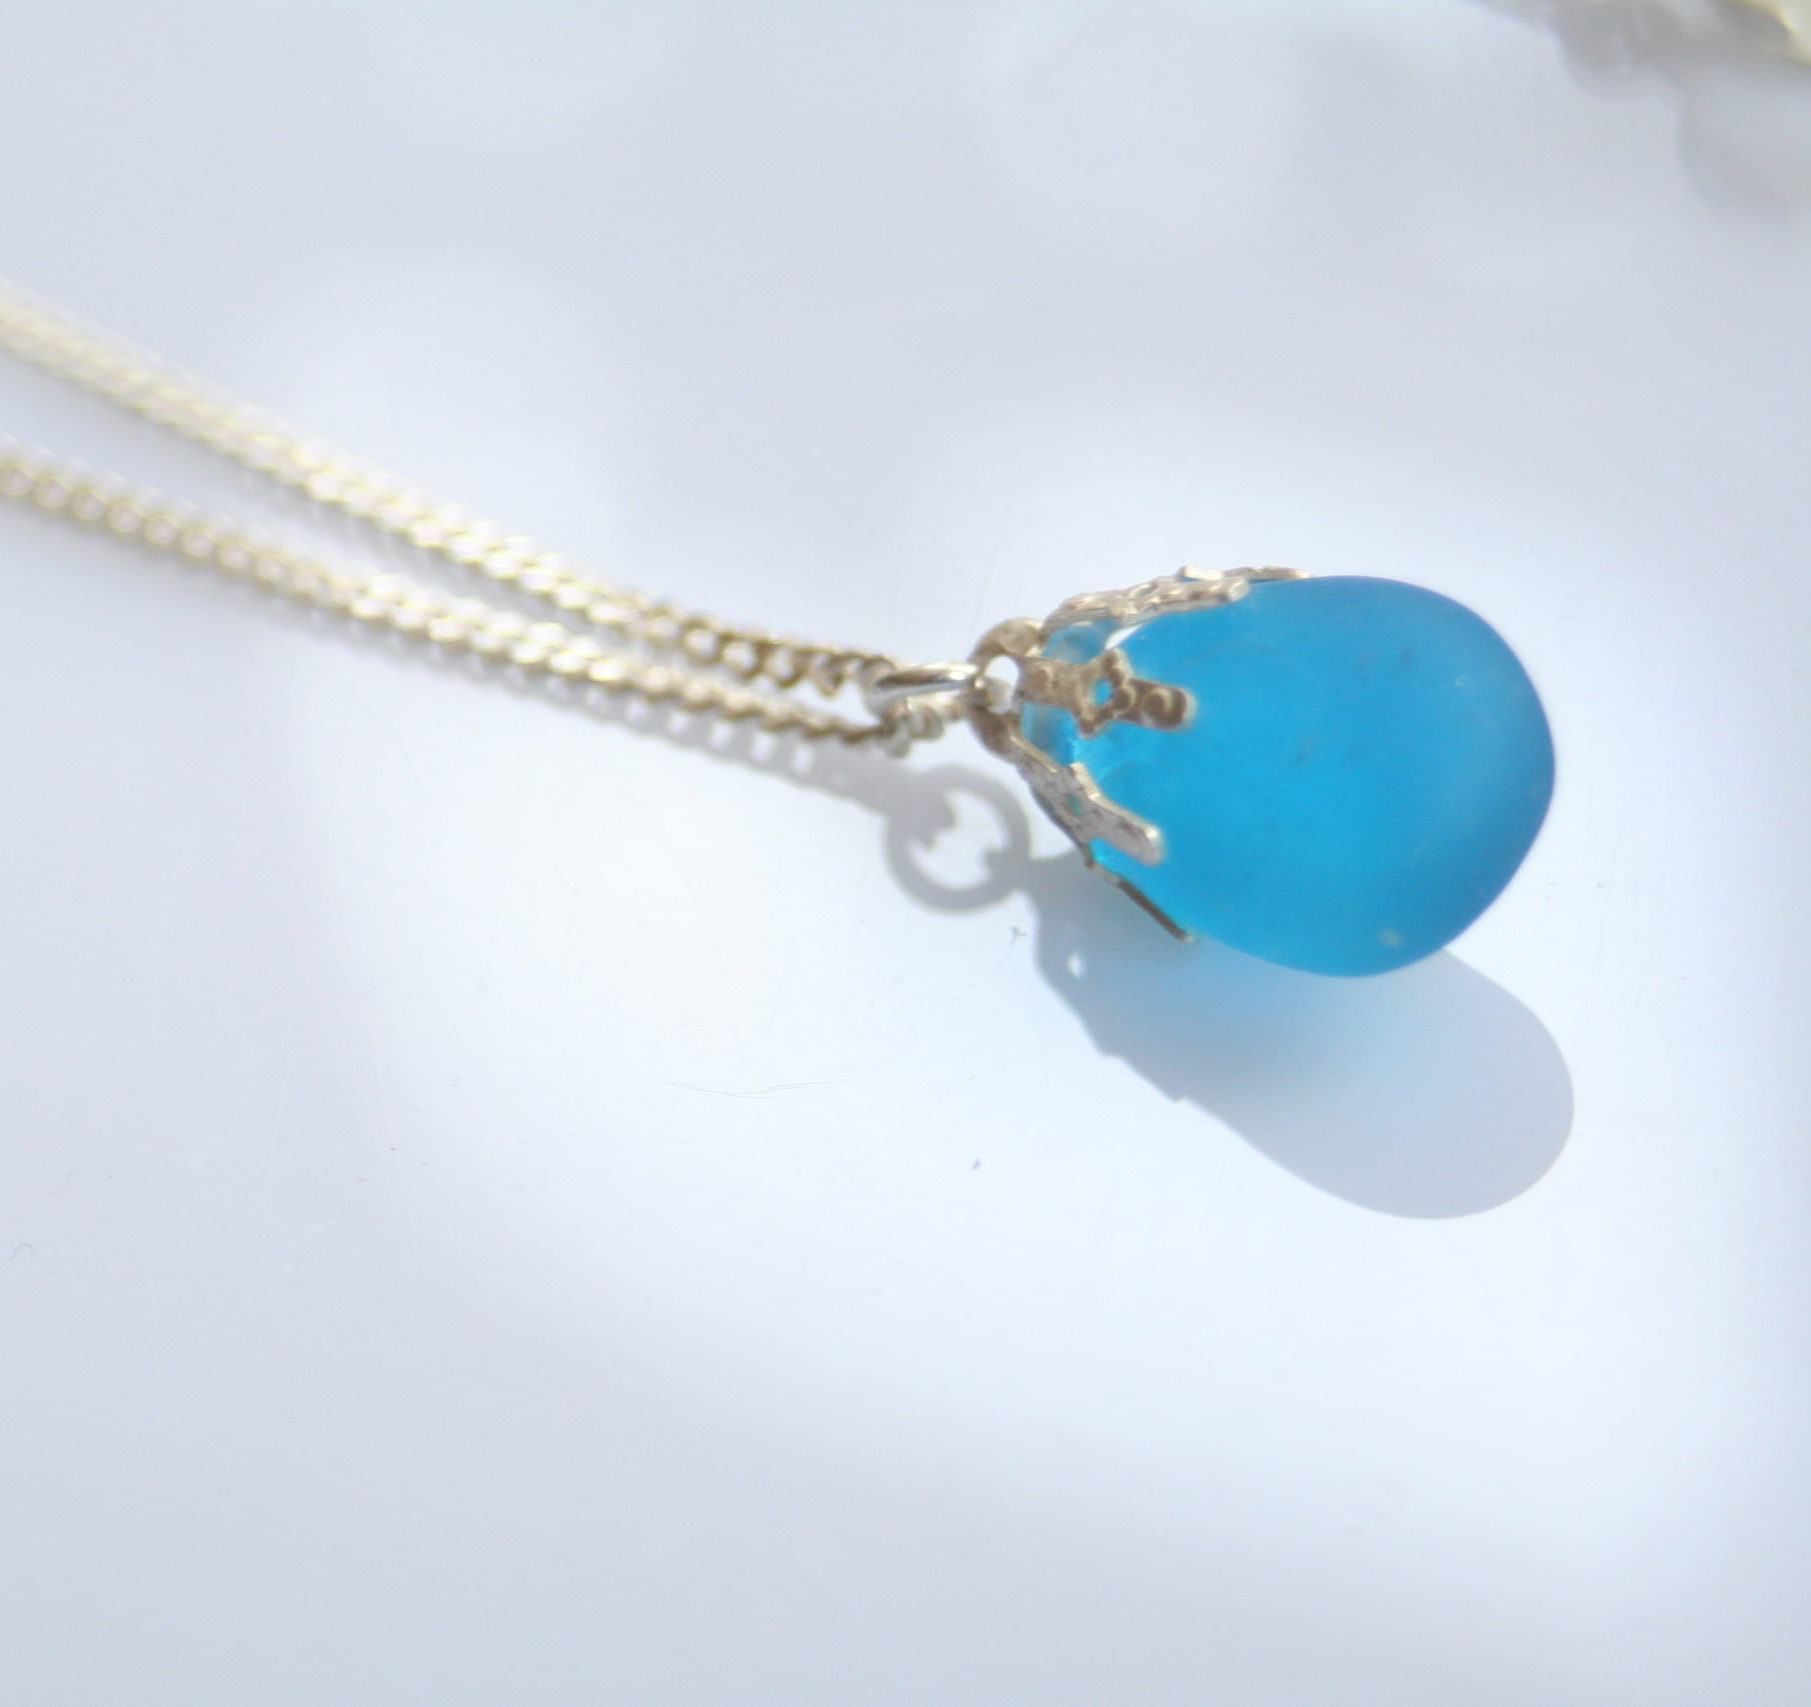 Sterling Silver Necklace With Seaglass Pendant Blue Marble Shop